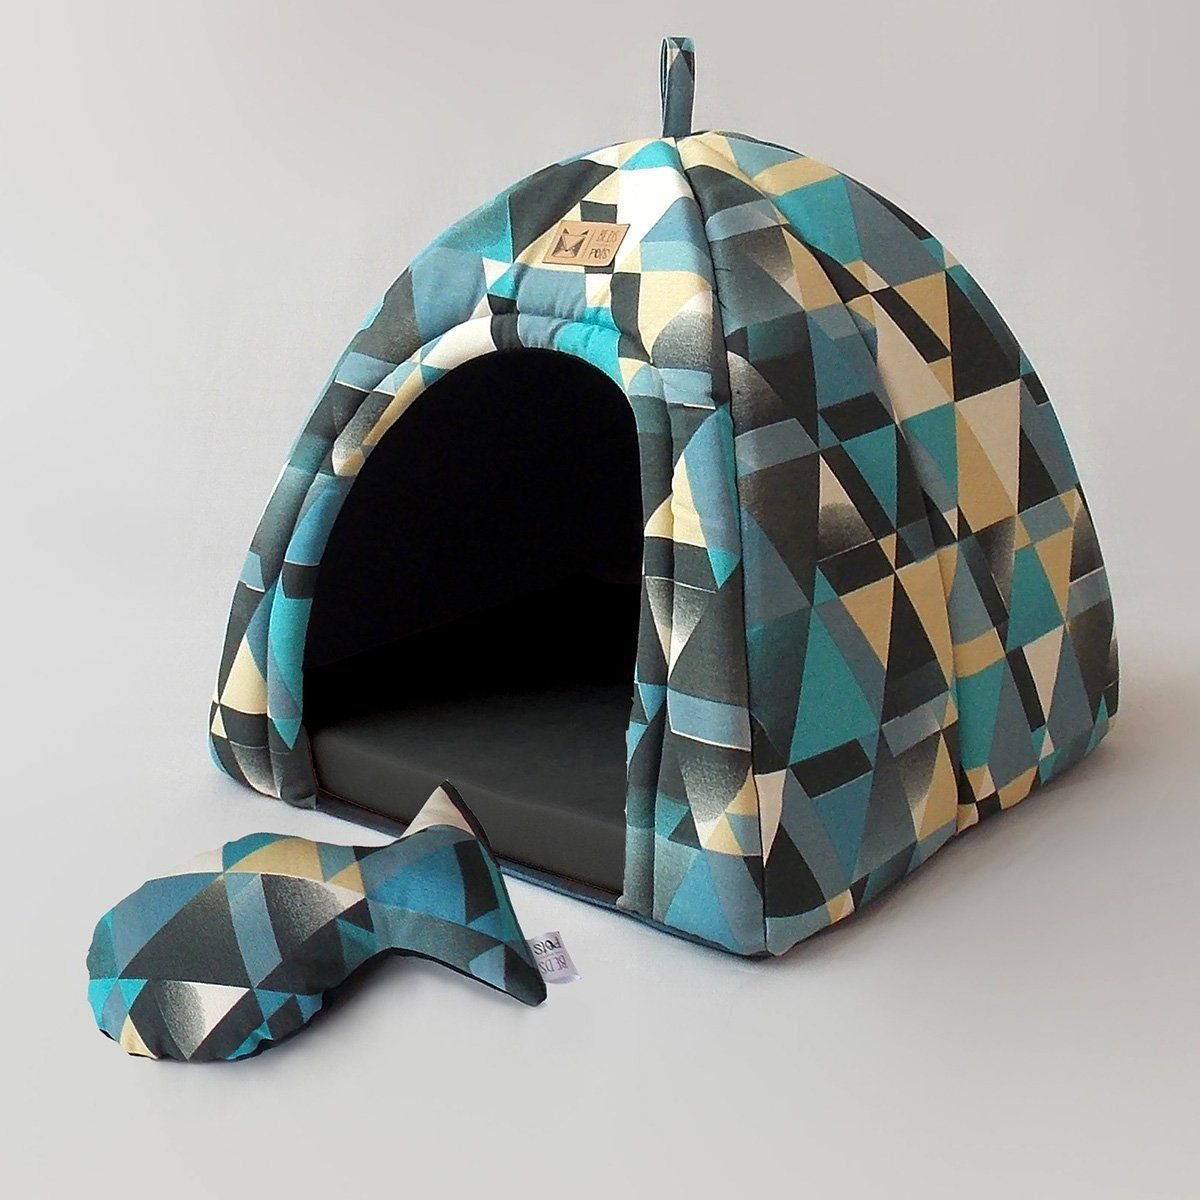 Toca Iglu para Cachorro Posh Blue Beds for Pets